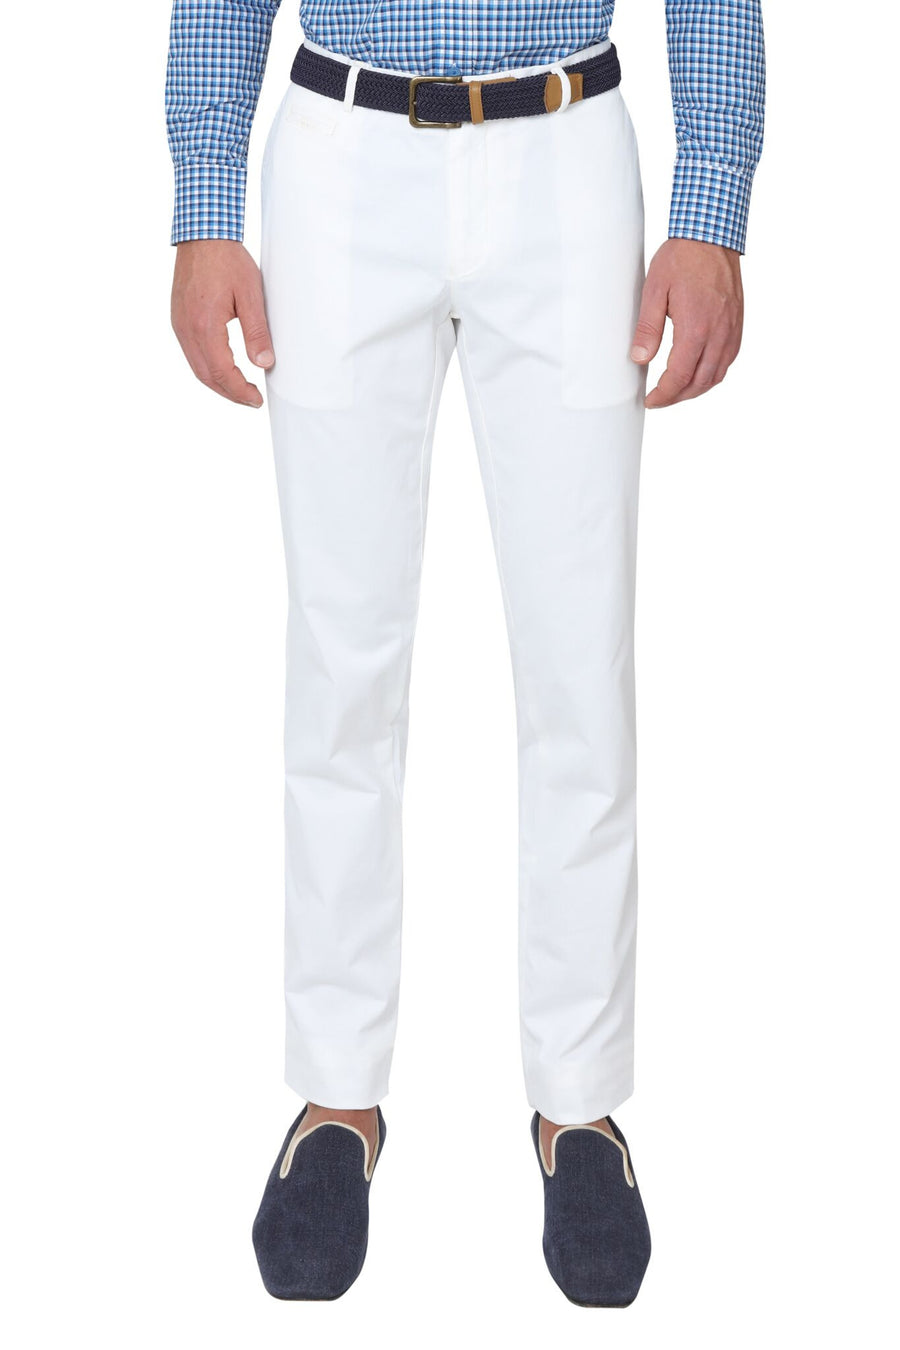 Bennett Stretch Washed European Cotton Chino in White